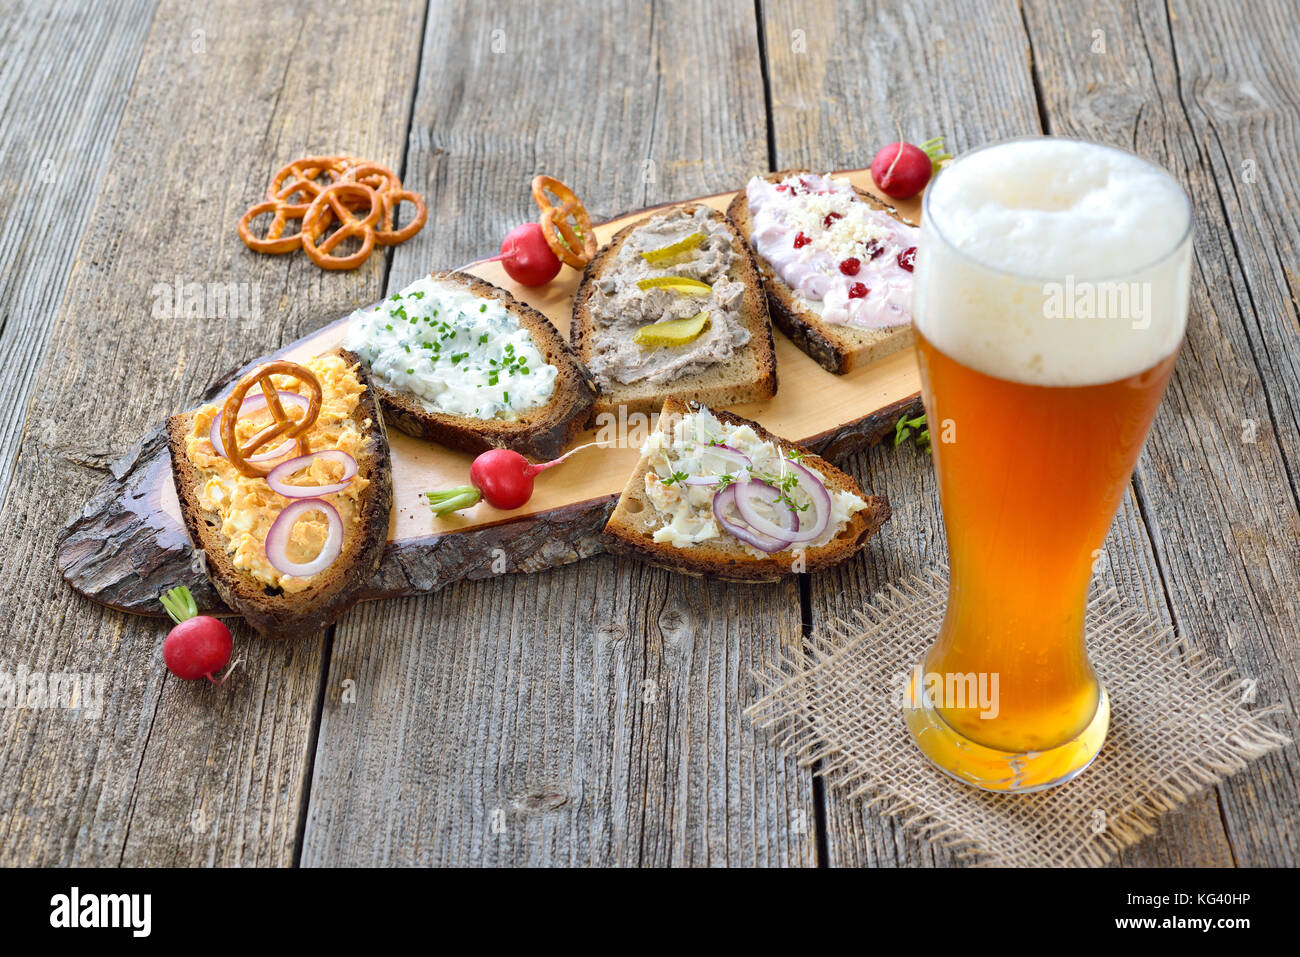 Hearty snack with different kinds of spreads on farmhouse bread served with a fresh yeast wheat beer on an old wooden - Stock Image